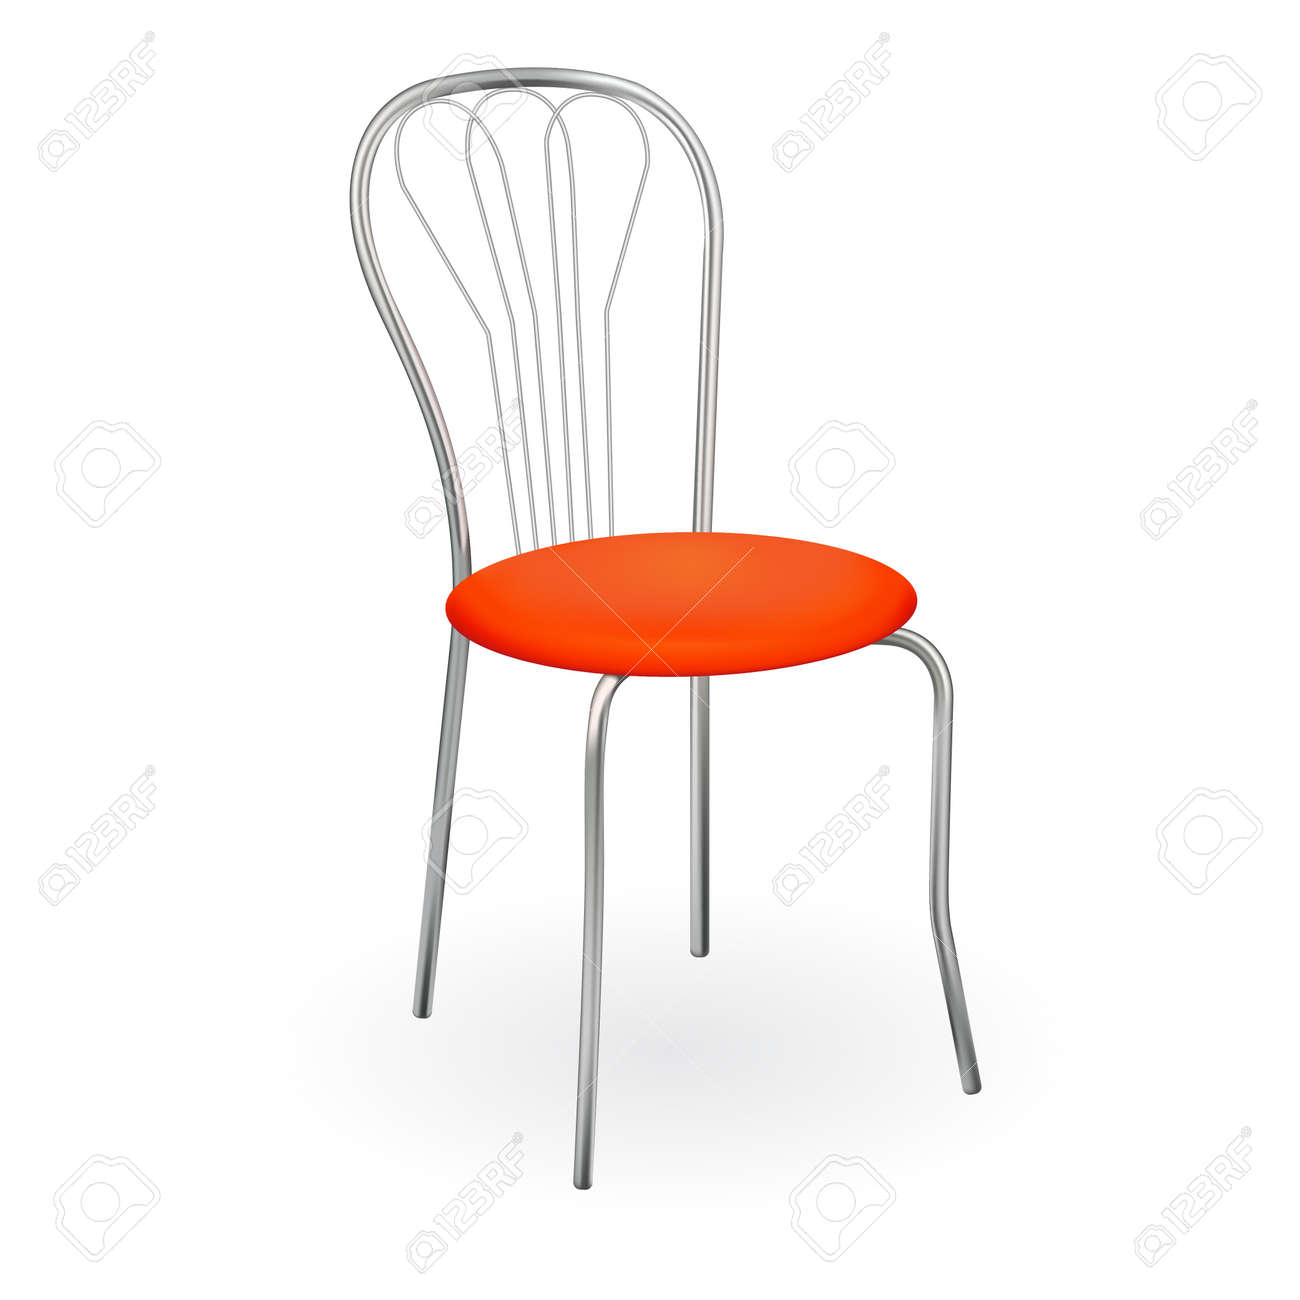 Realistic chair isolated on white for design illustration. Stock Vector - 19856229